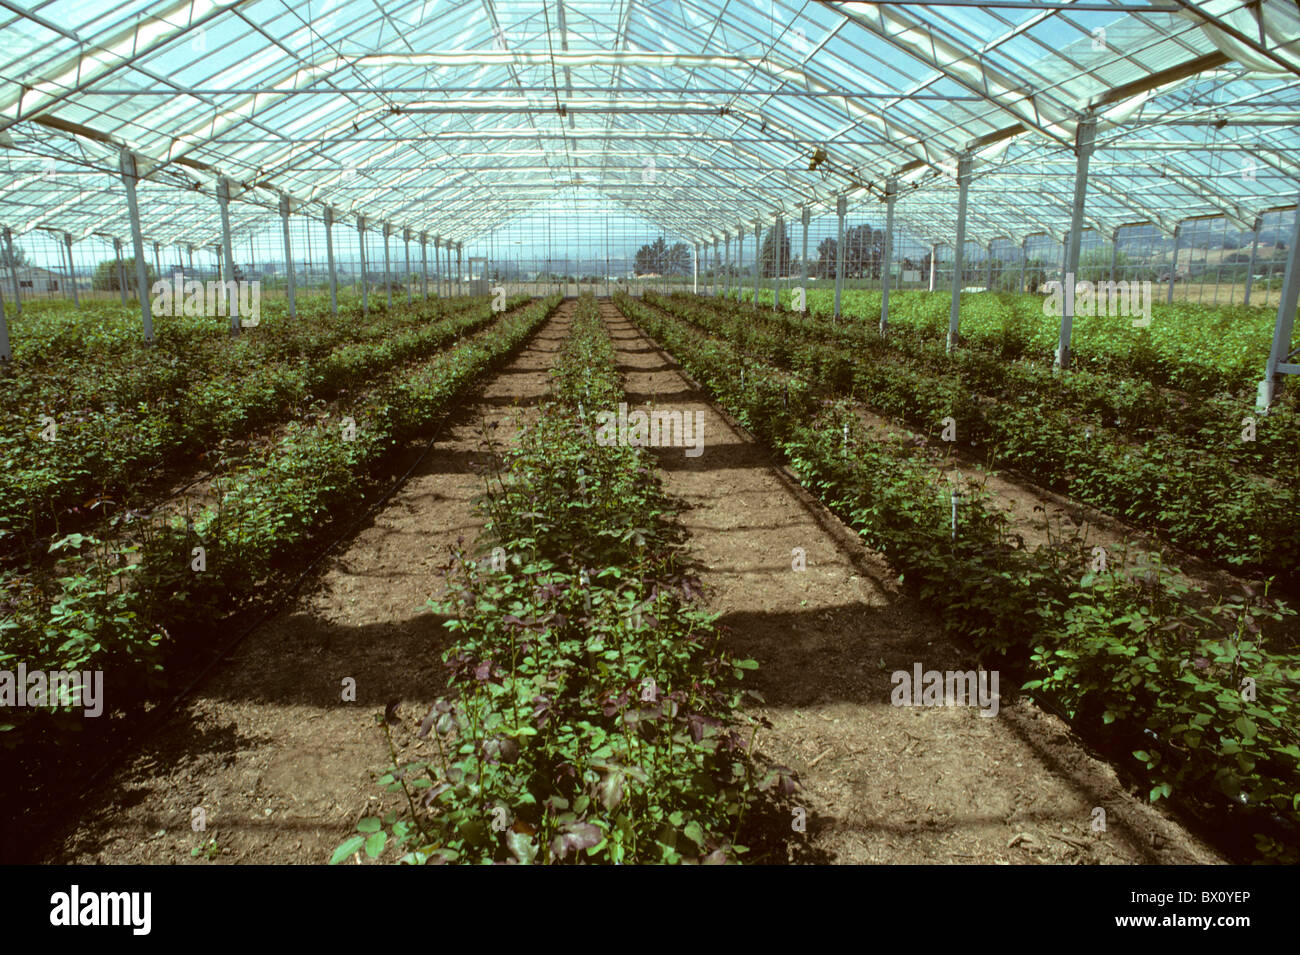 Greenhouse filled with rose plants - Stock Image